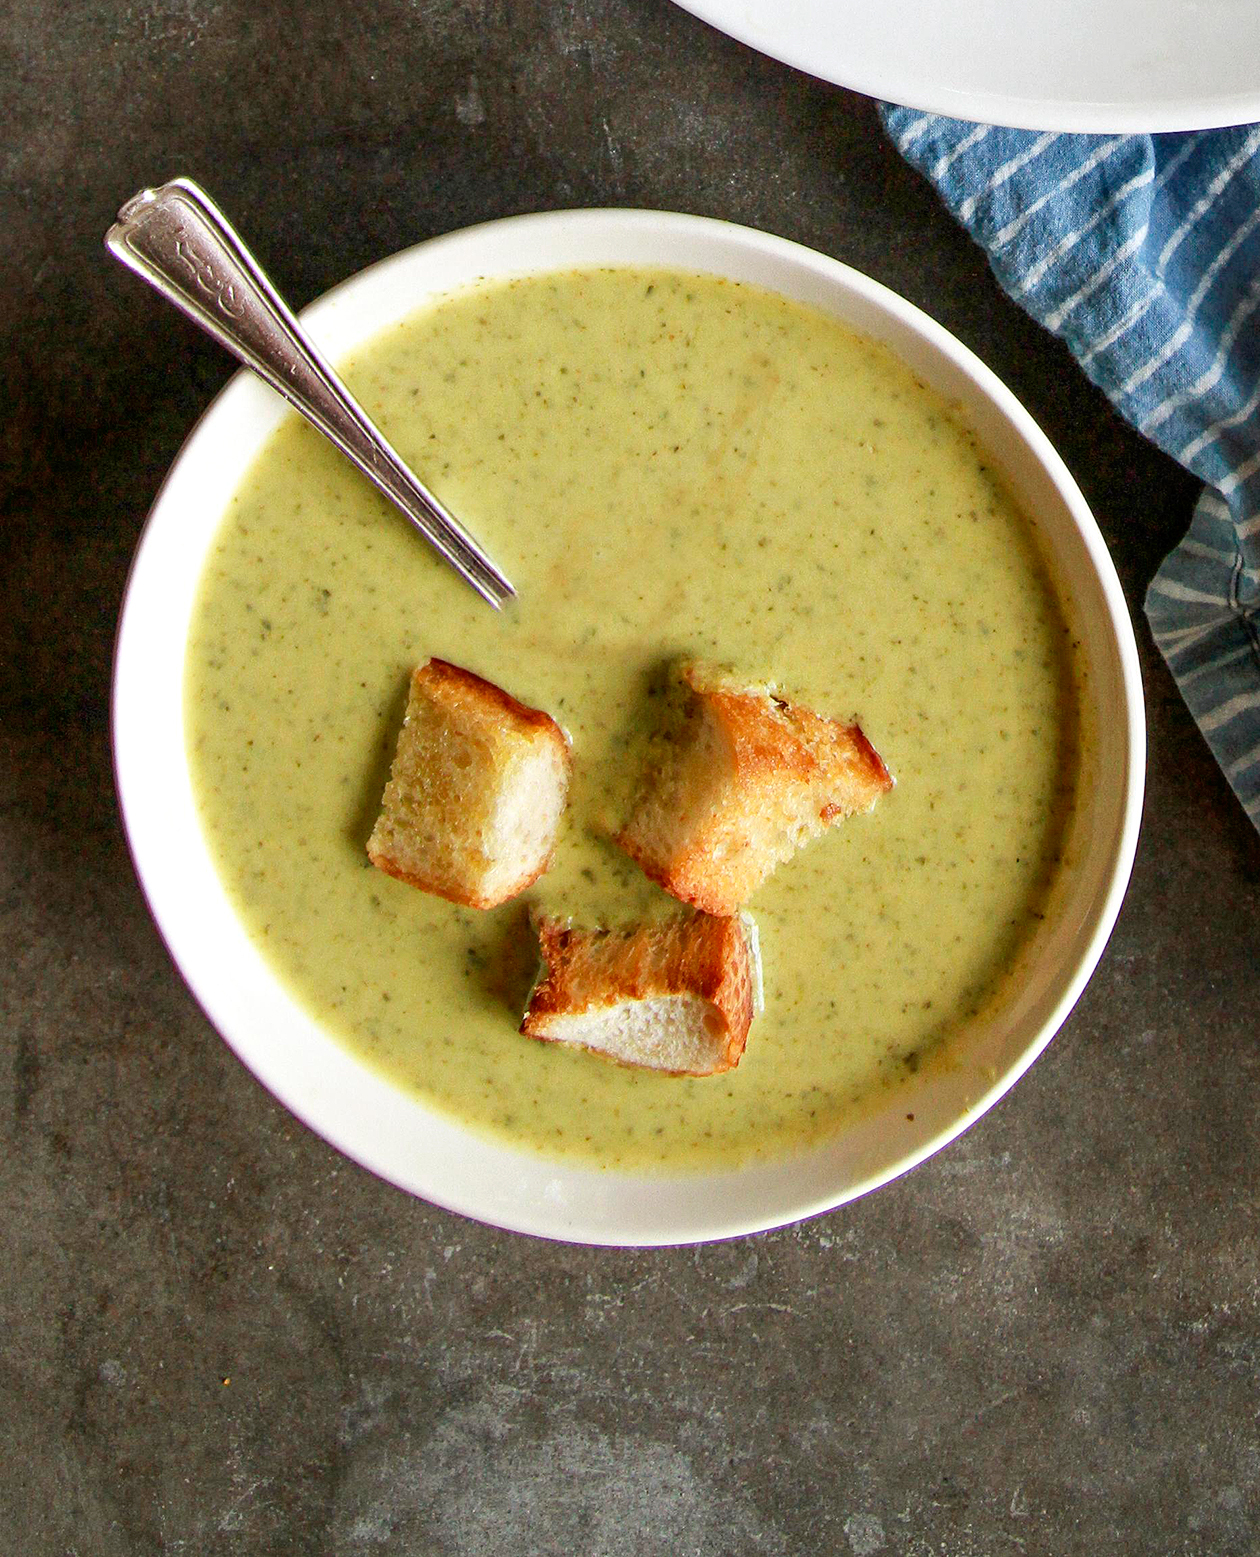 Curried Zucchini Soup with croutons